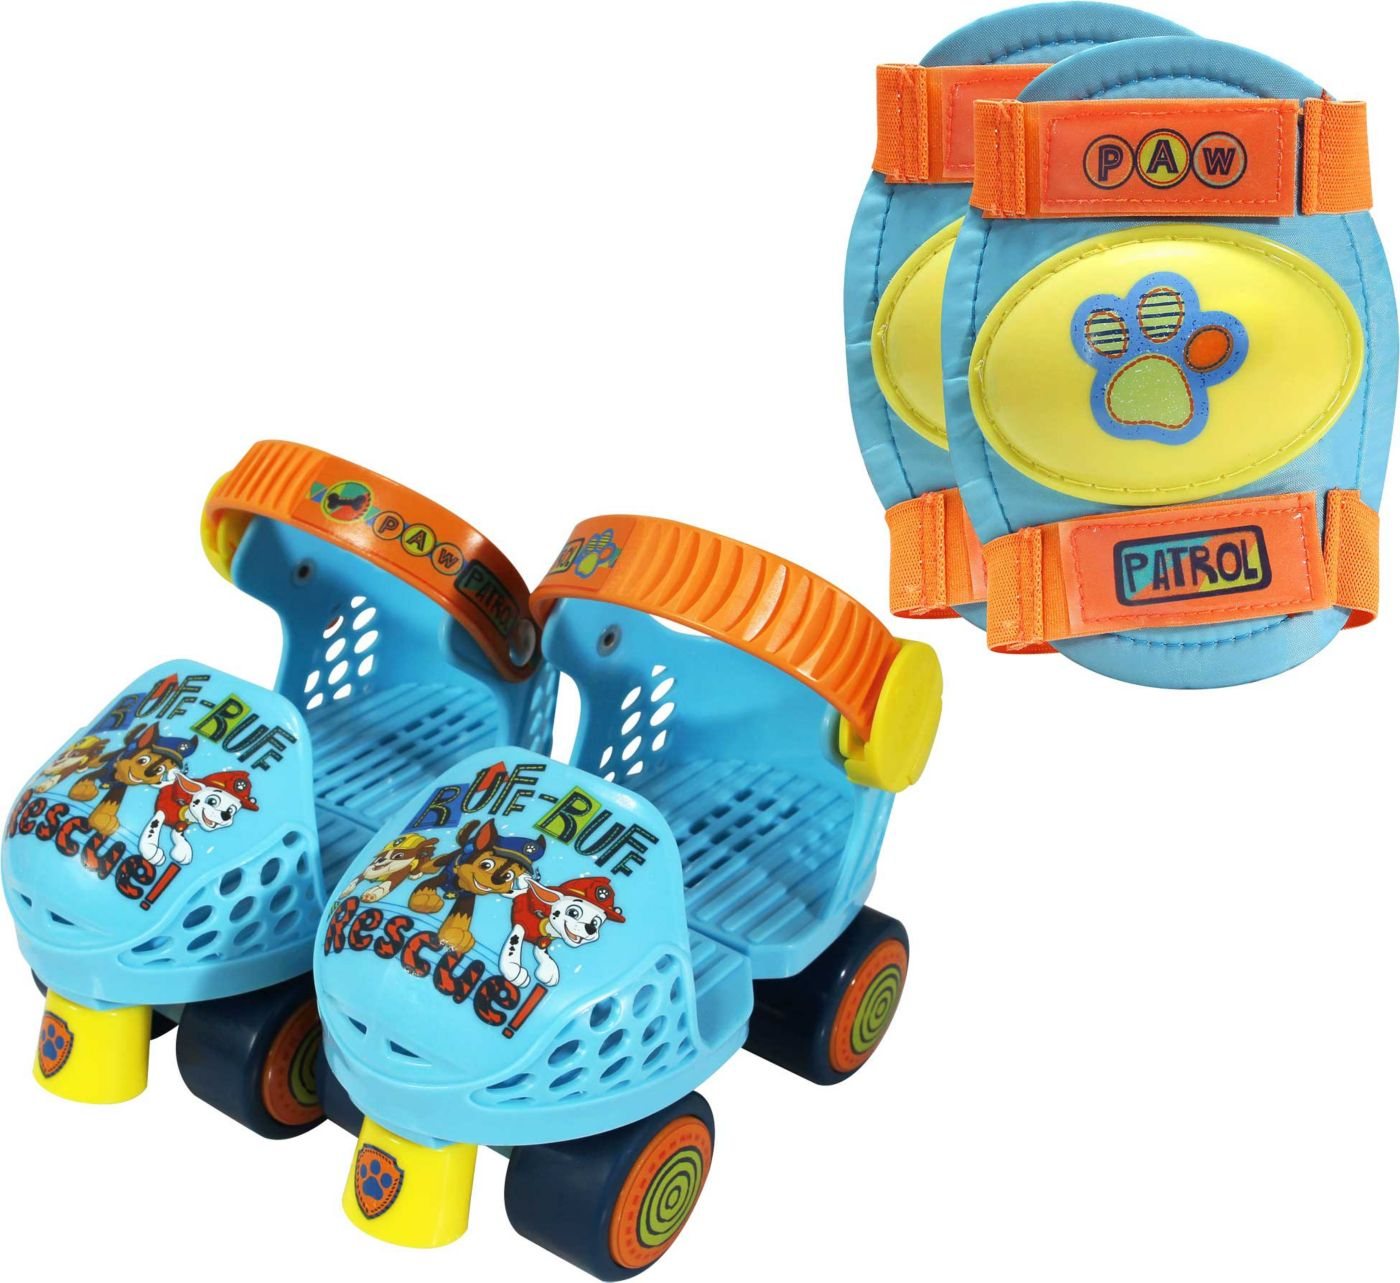 Playwheels Boys' Paw Patrol Roller Skates and Knee Pads